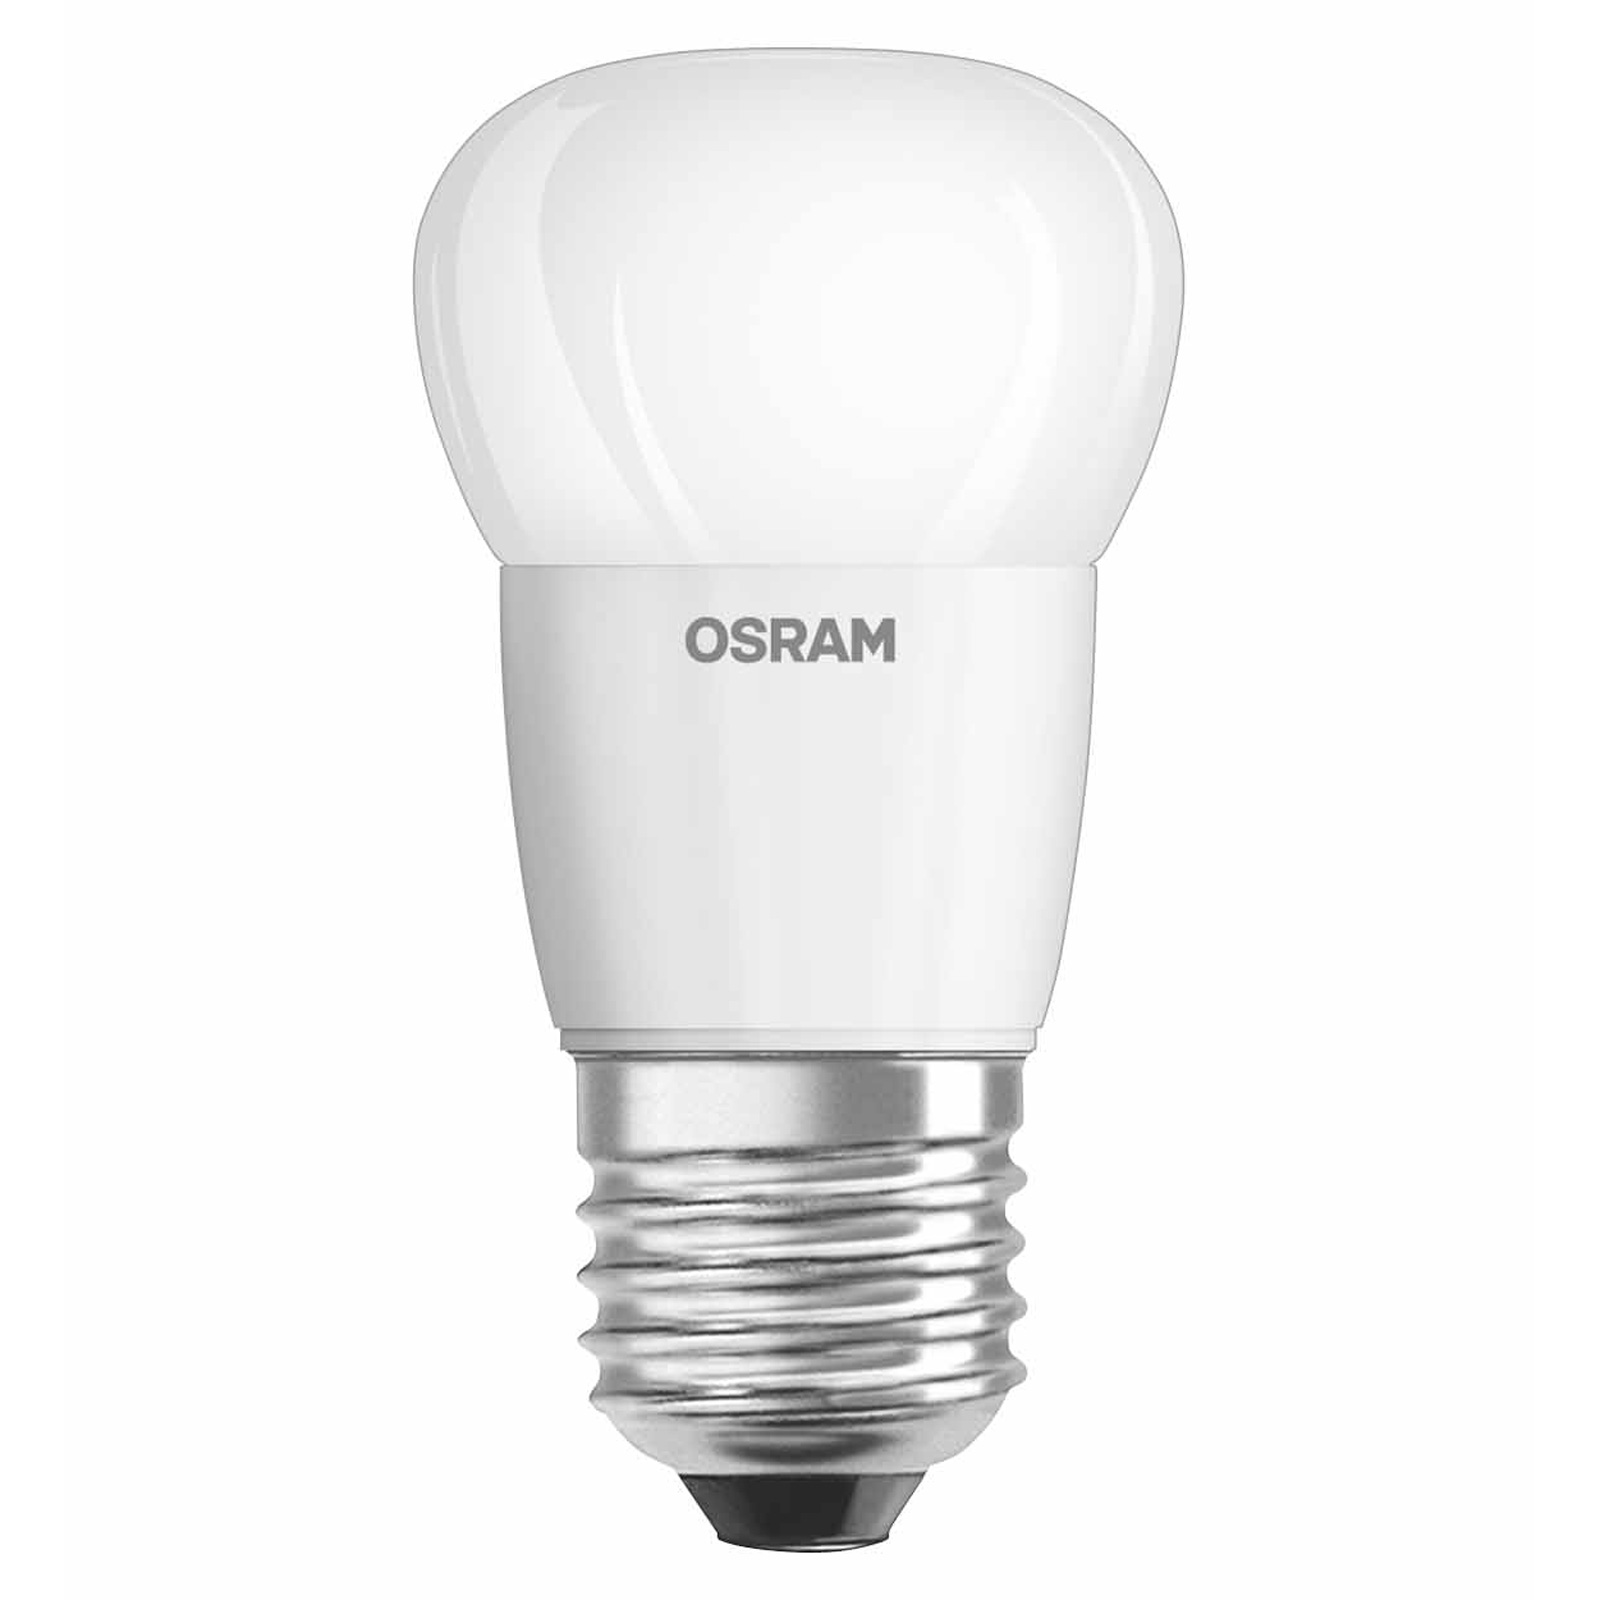 osram led lampe star classic p 40 e27 5 8w ersetzt 40 watt 470 lumen warmwei. Black Bedroom Furniture Sets. Home Design Ideas